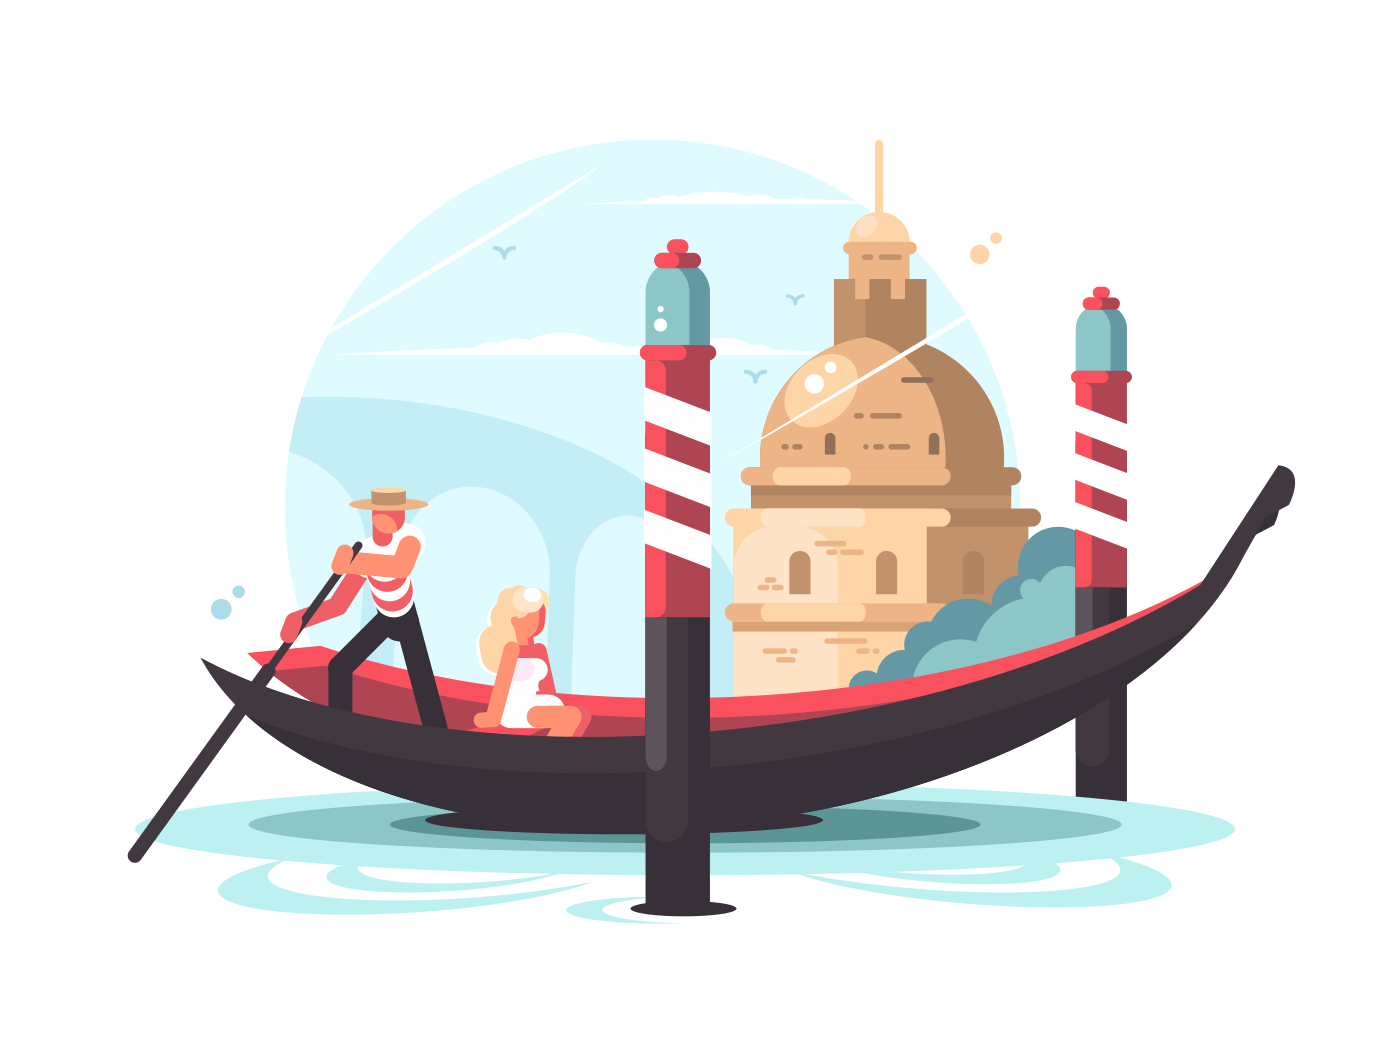 Gondolier transports woman in gondola on water channel. Vector illustration